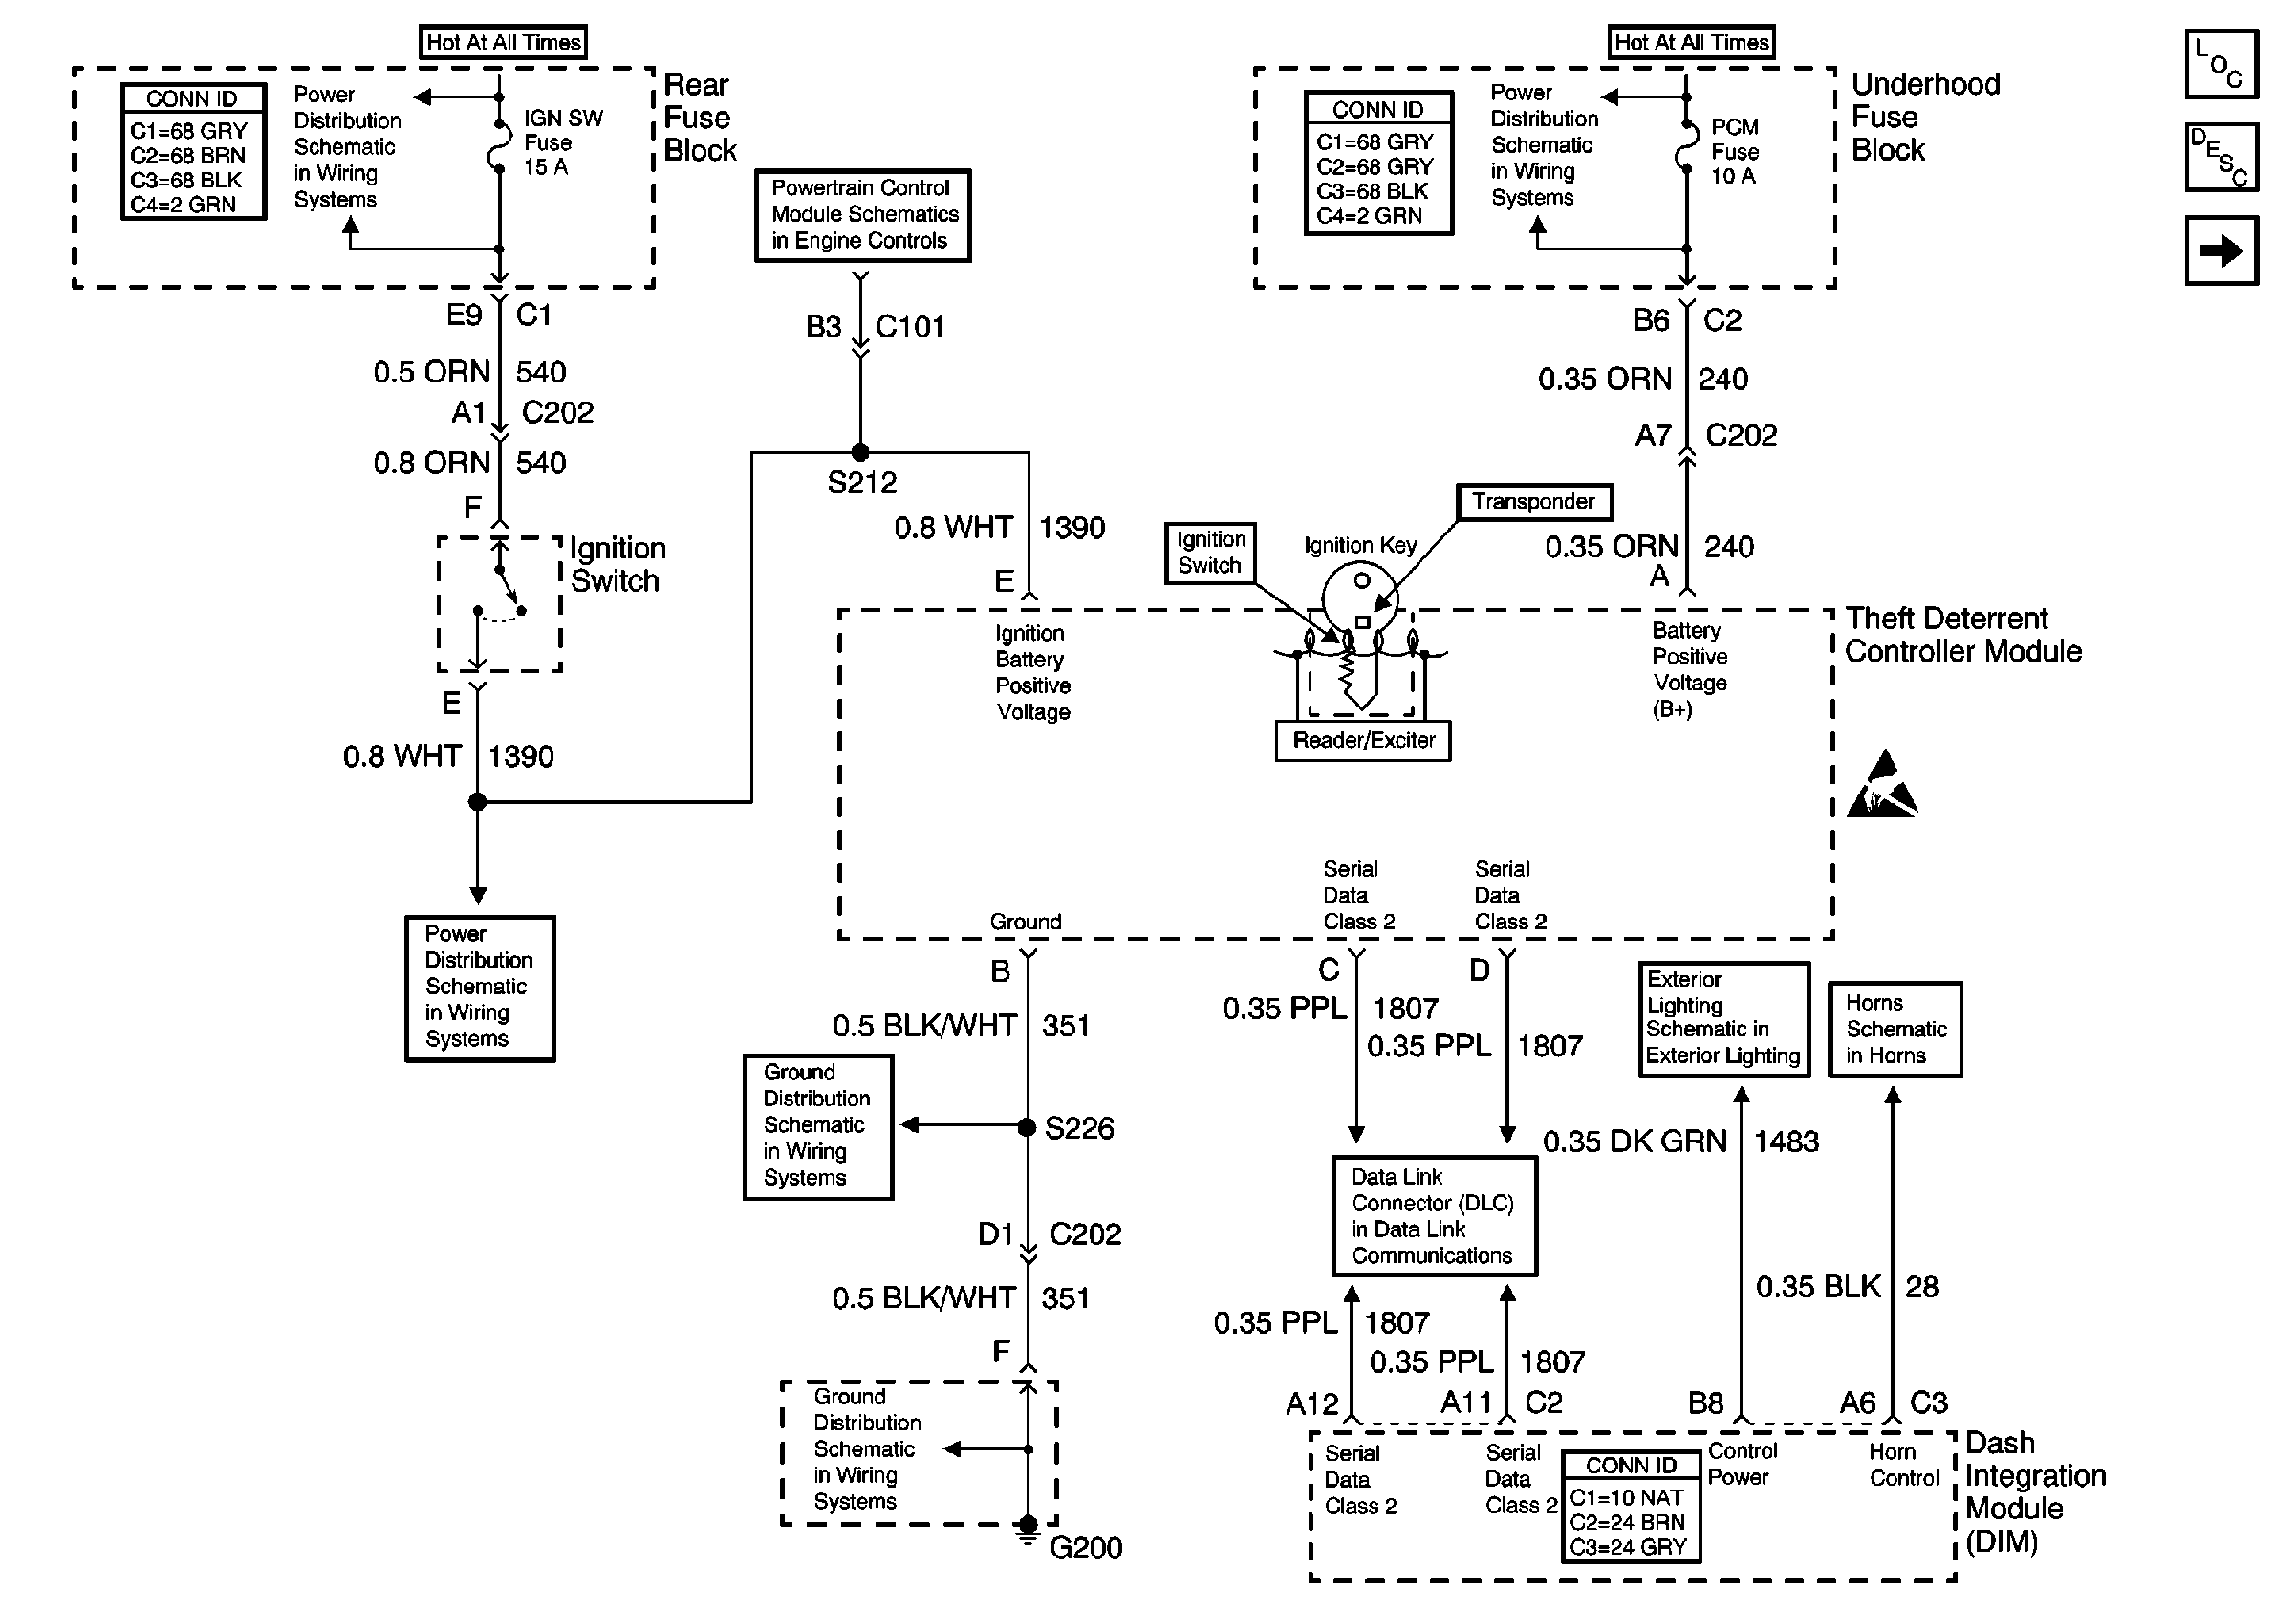 bf536585-6219-4d43-a9f5-124033ee9a00_theft wiring diagram.png